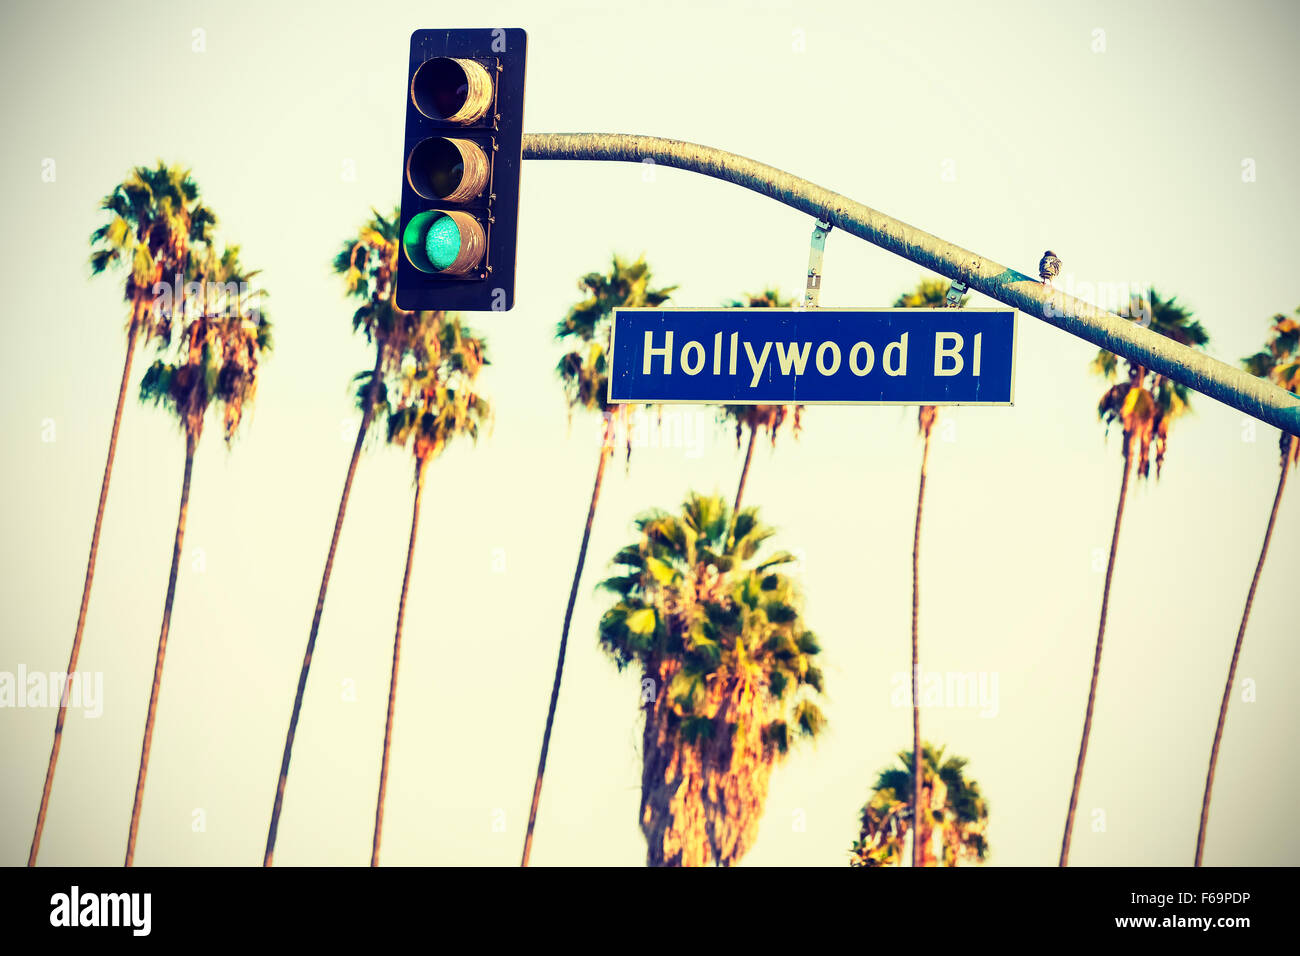 Cross processed Hollywood boulevard sign and traffic lights with palm trees in the background, Los Angeles, USA. - Stock Image